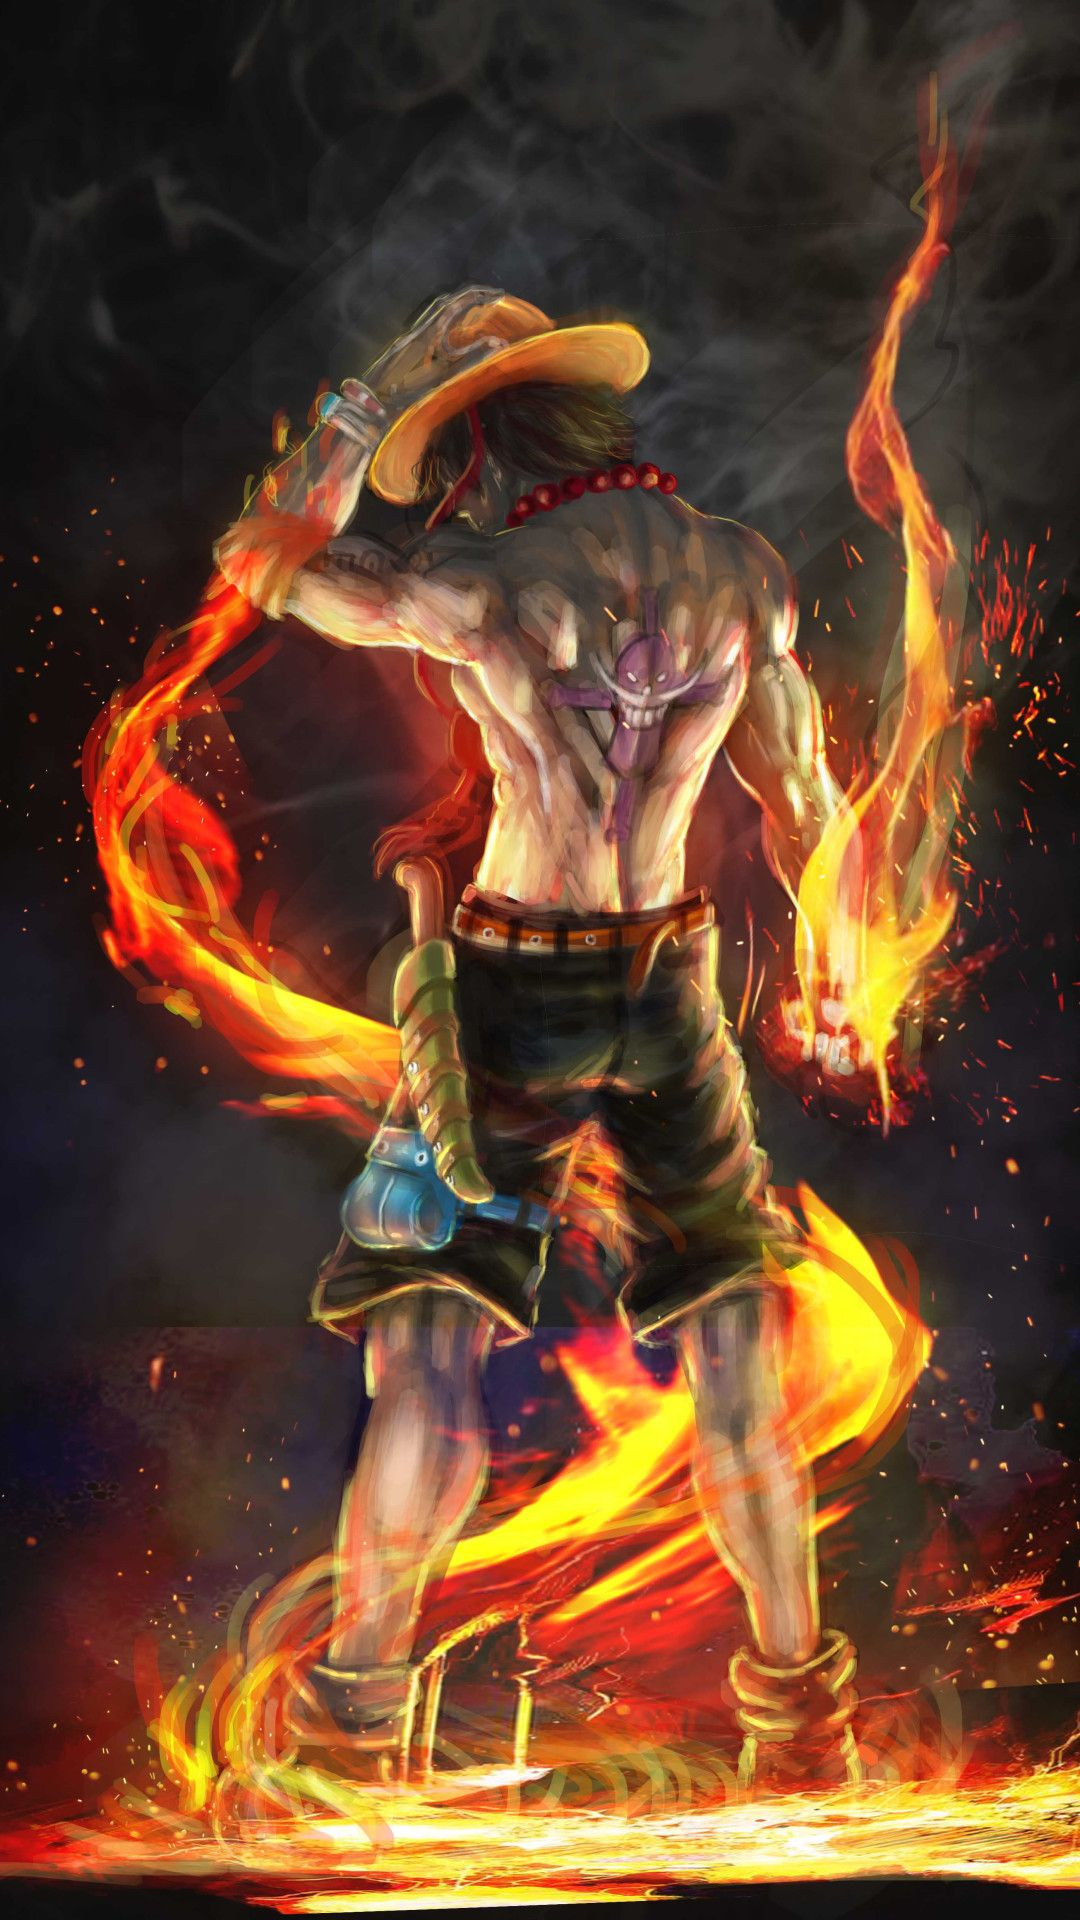 Fire Fist Ace 4k Artwork Mobile Wallpaper (iPhone, Android